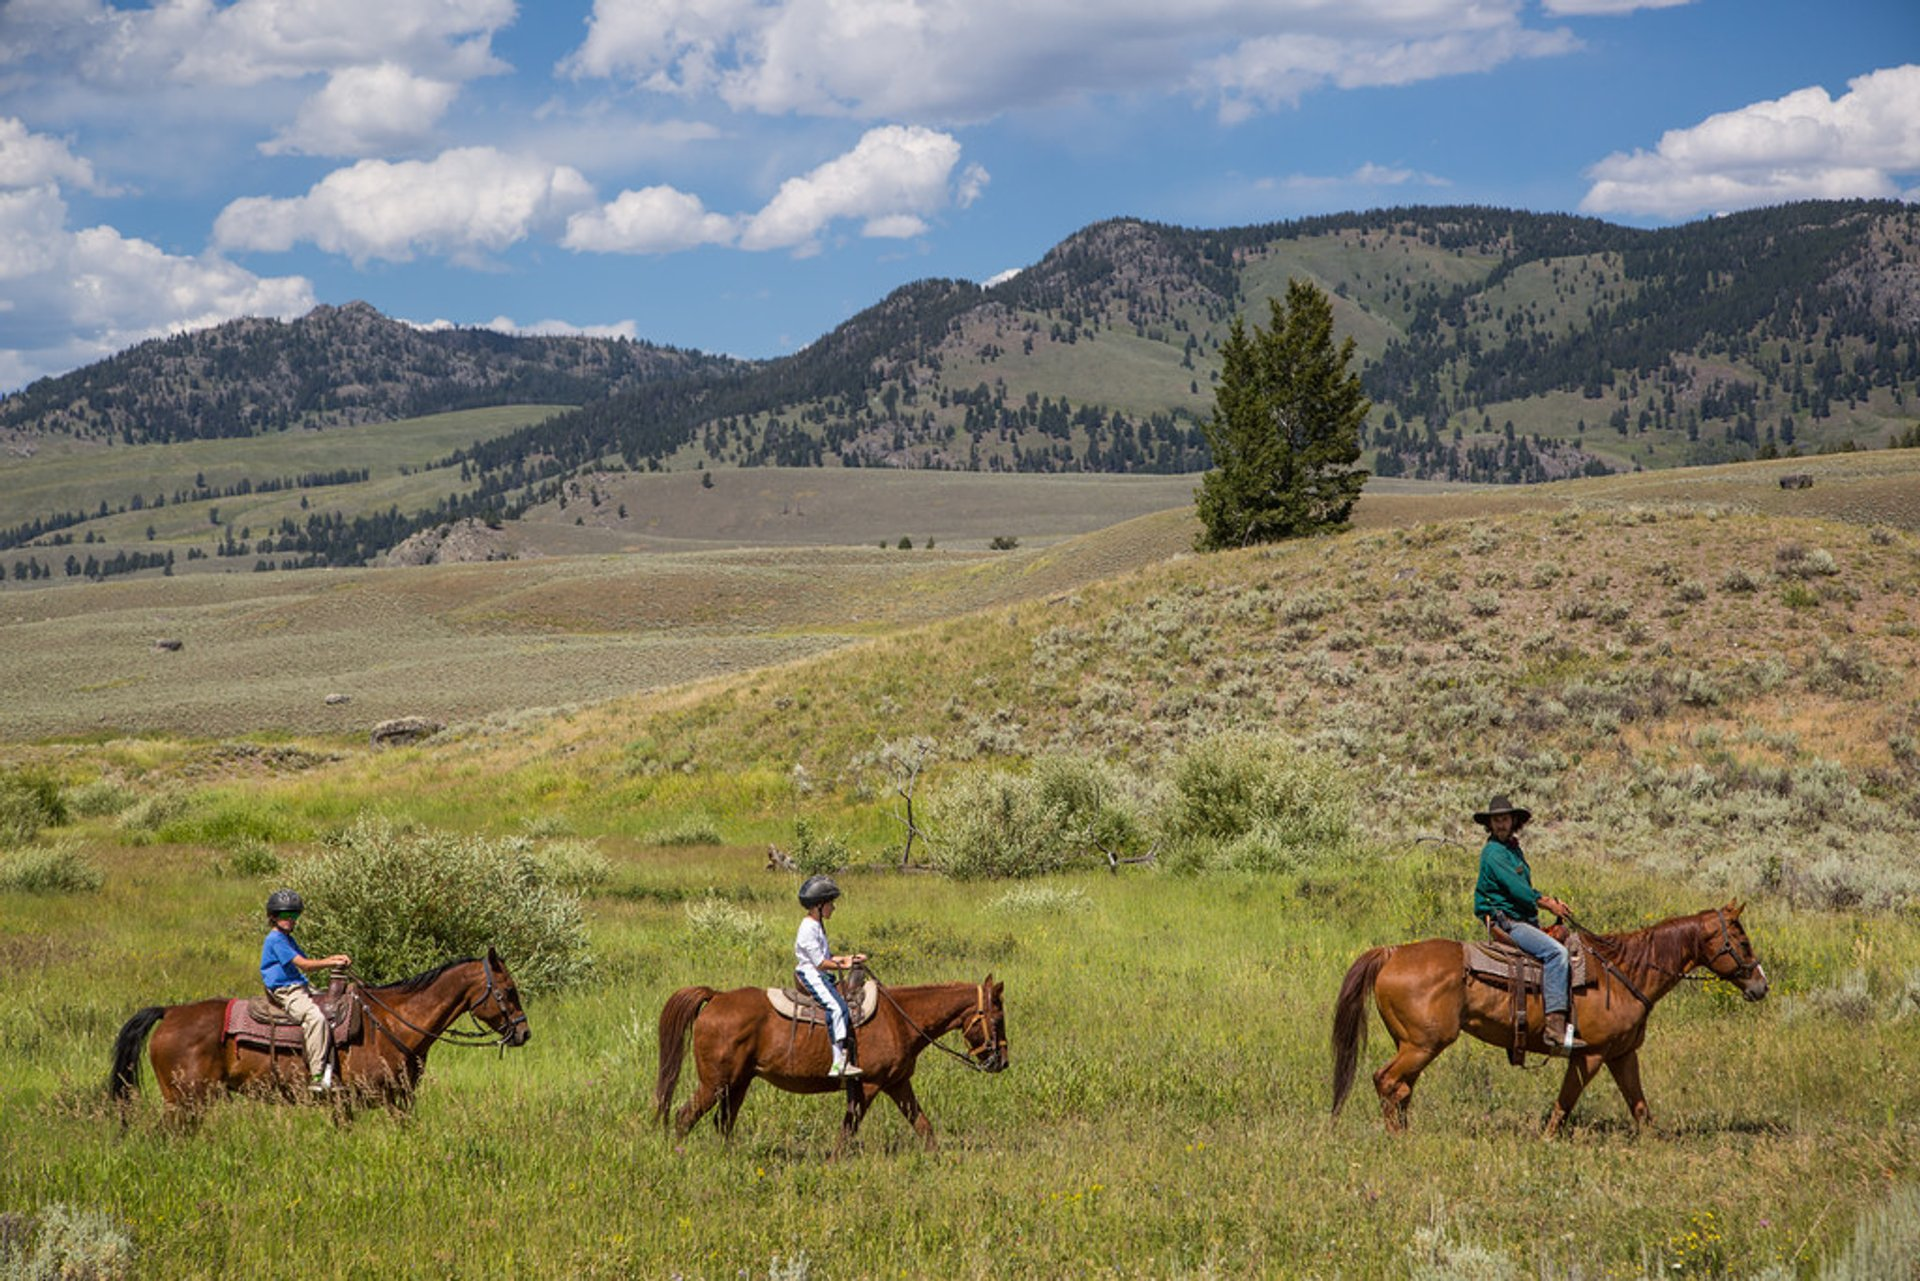 Horseback Riding in Yellowstone National Park 2020 - Best Time